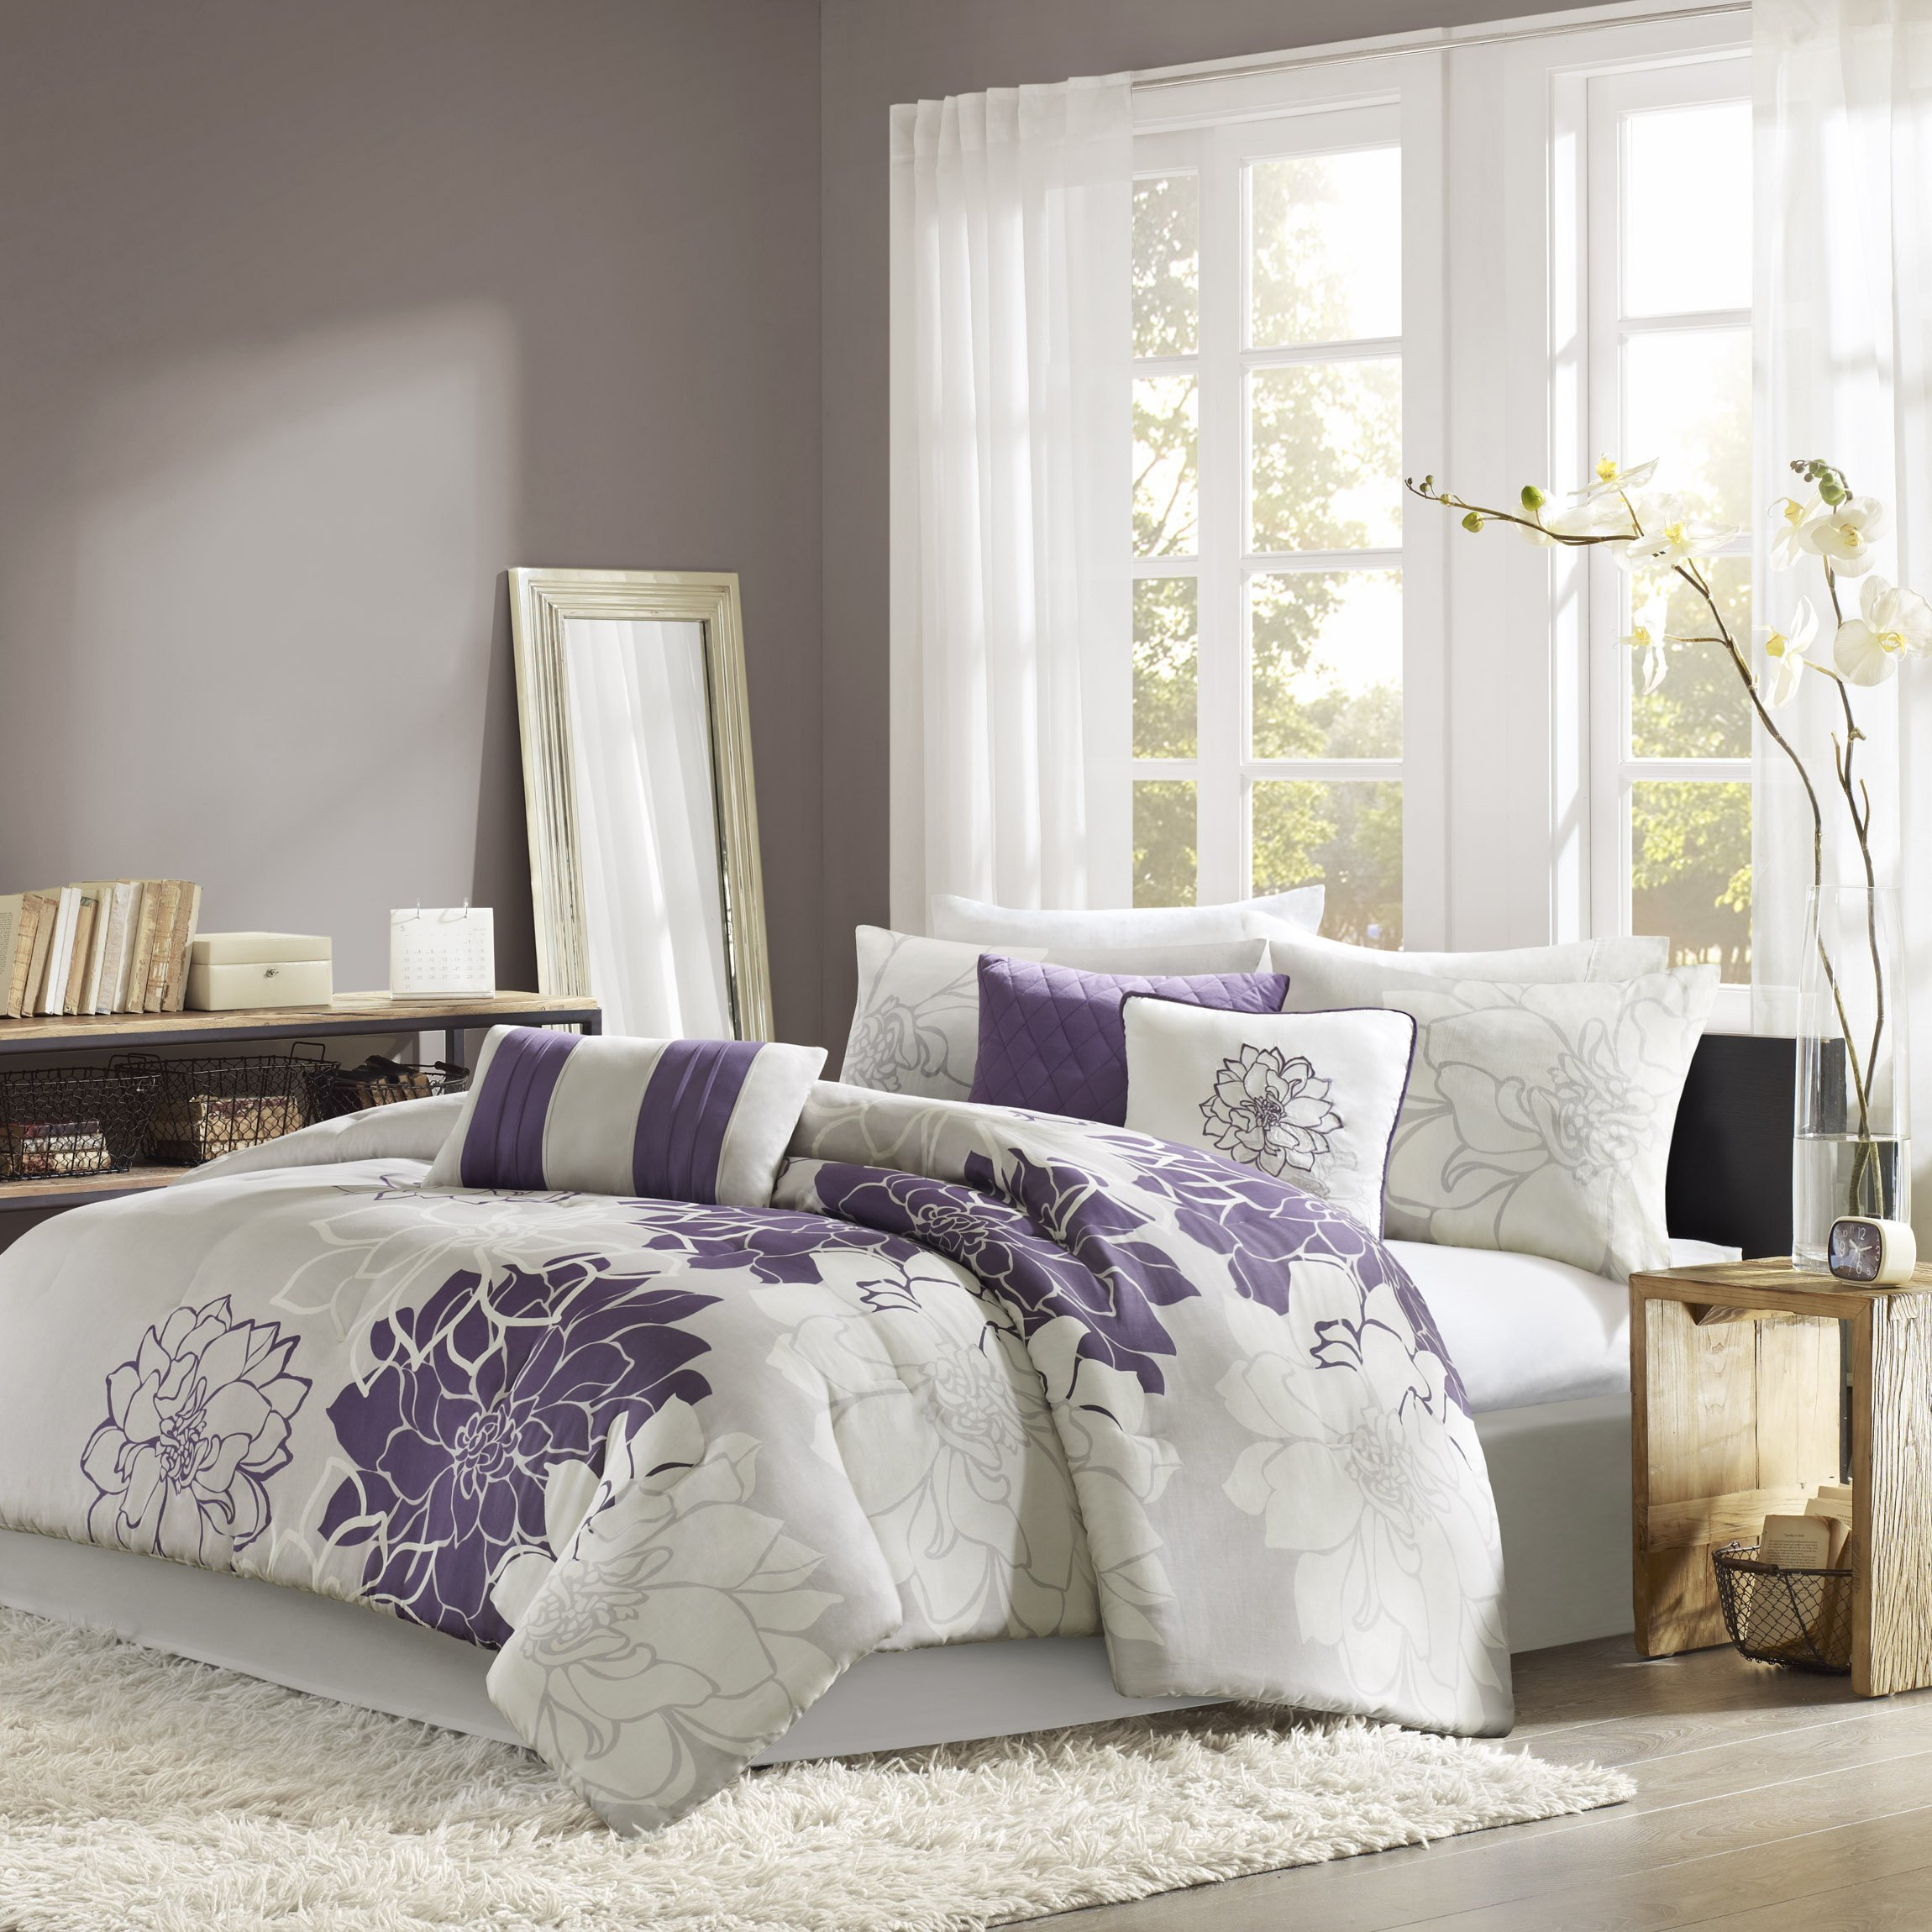 Madison Park Lola Twin/Twin Xl Size Bed Comforter Set - Purple, Grey, Floral, Flowers – 6 Pieces Bedding Sets – Cotton Sateen, Cotton Poly Crossweave Bedroom Comforters